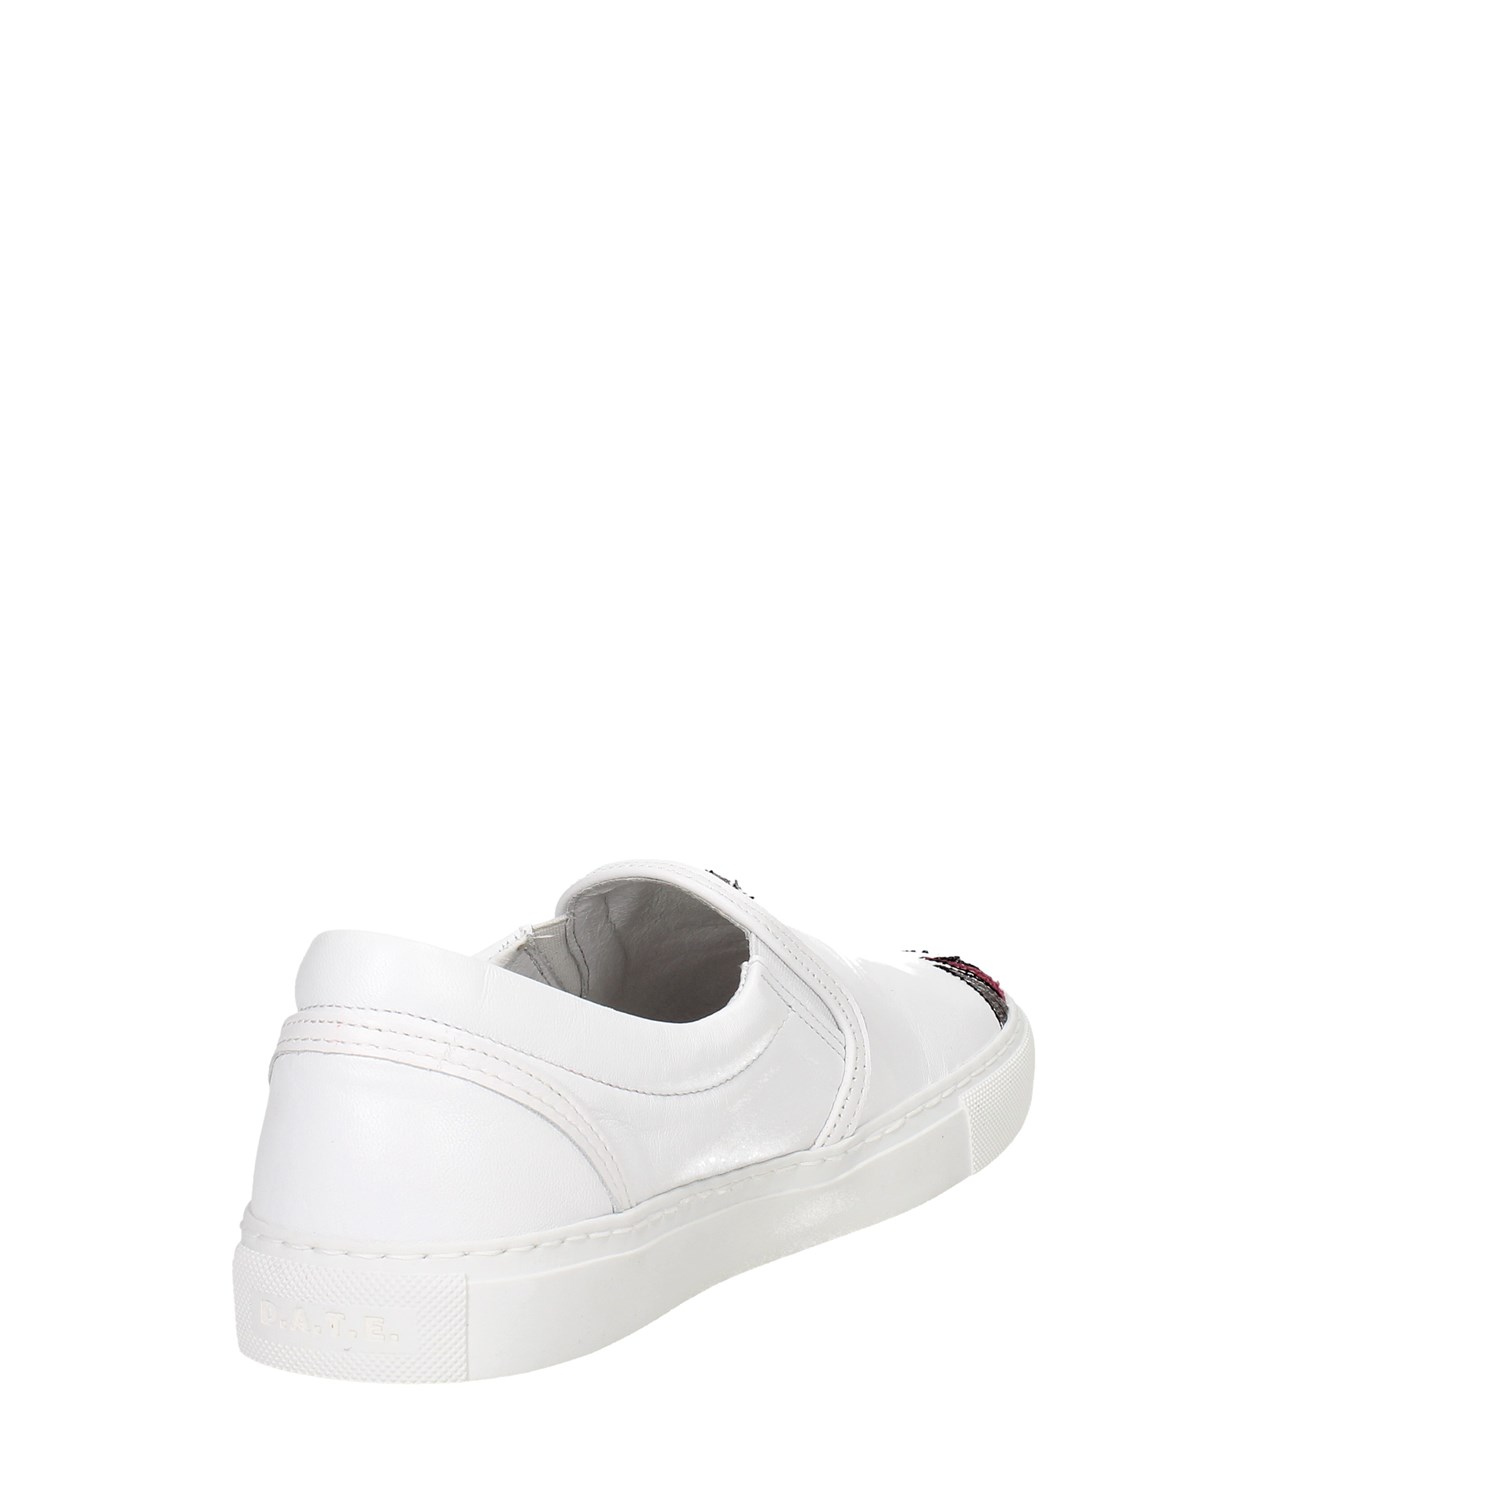 D.a.t.e. SLIP ON-15I mujer BIANCO Slip-on mujer ON-15I Autunno Inverno 73f87b